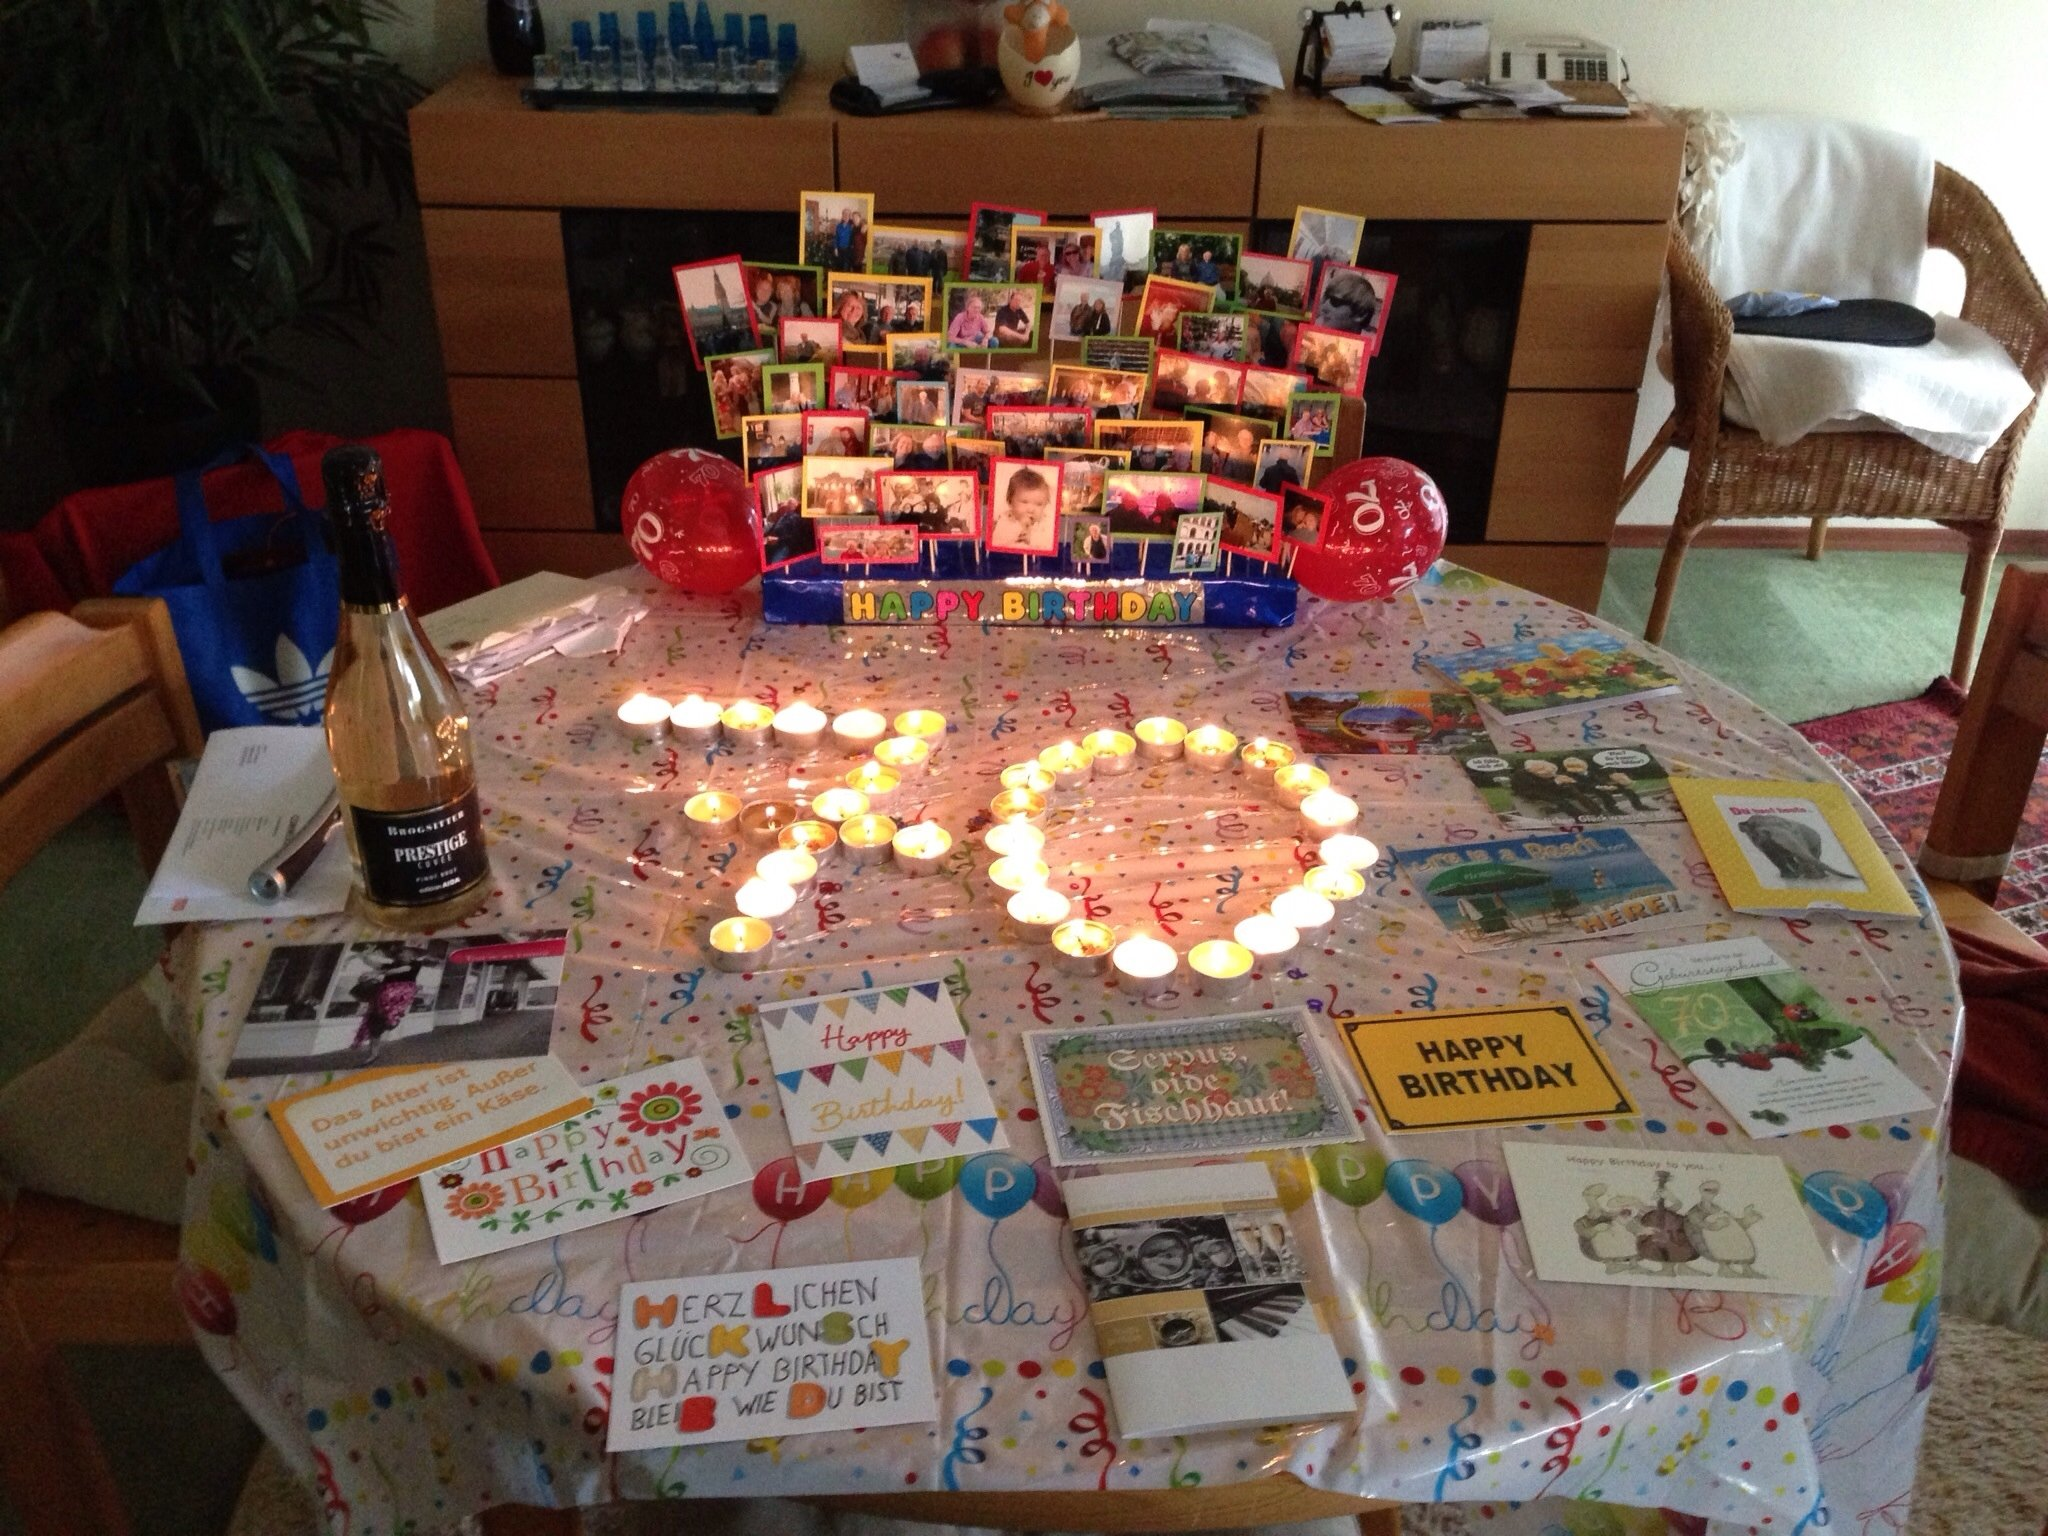 10 Nice Ideas For A 70Th Birthday Party 70th birthday decoration dads 70th pinterest 70th birthday 1 2021